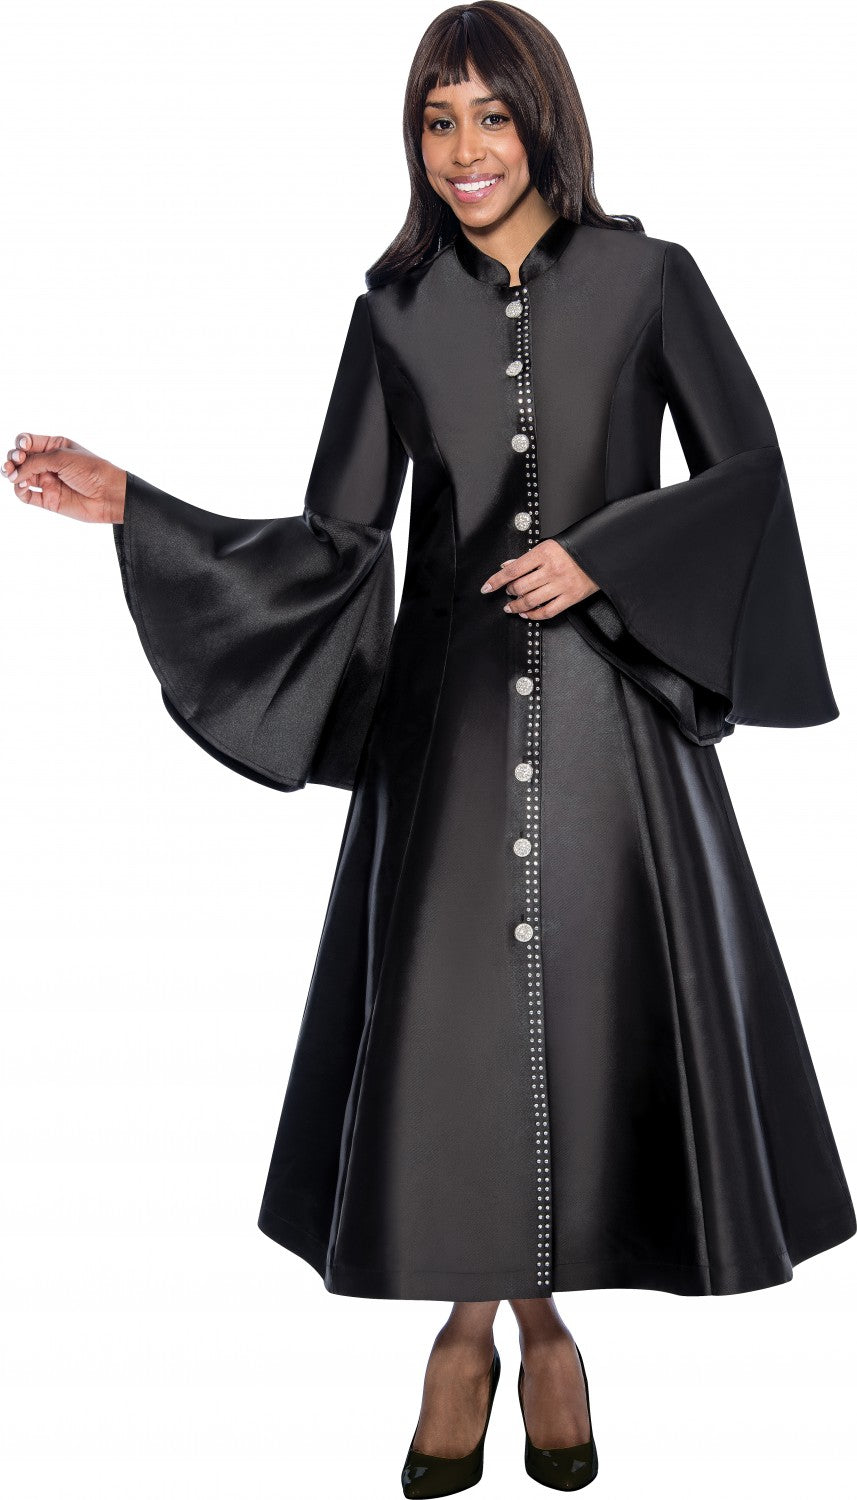 Church Robe  RR9031-Black - Church Suits For Less